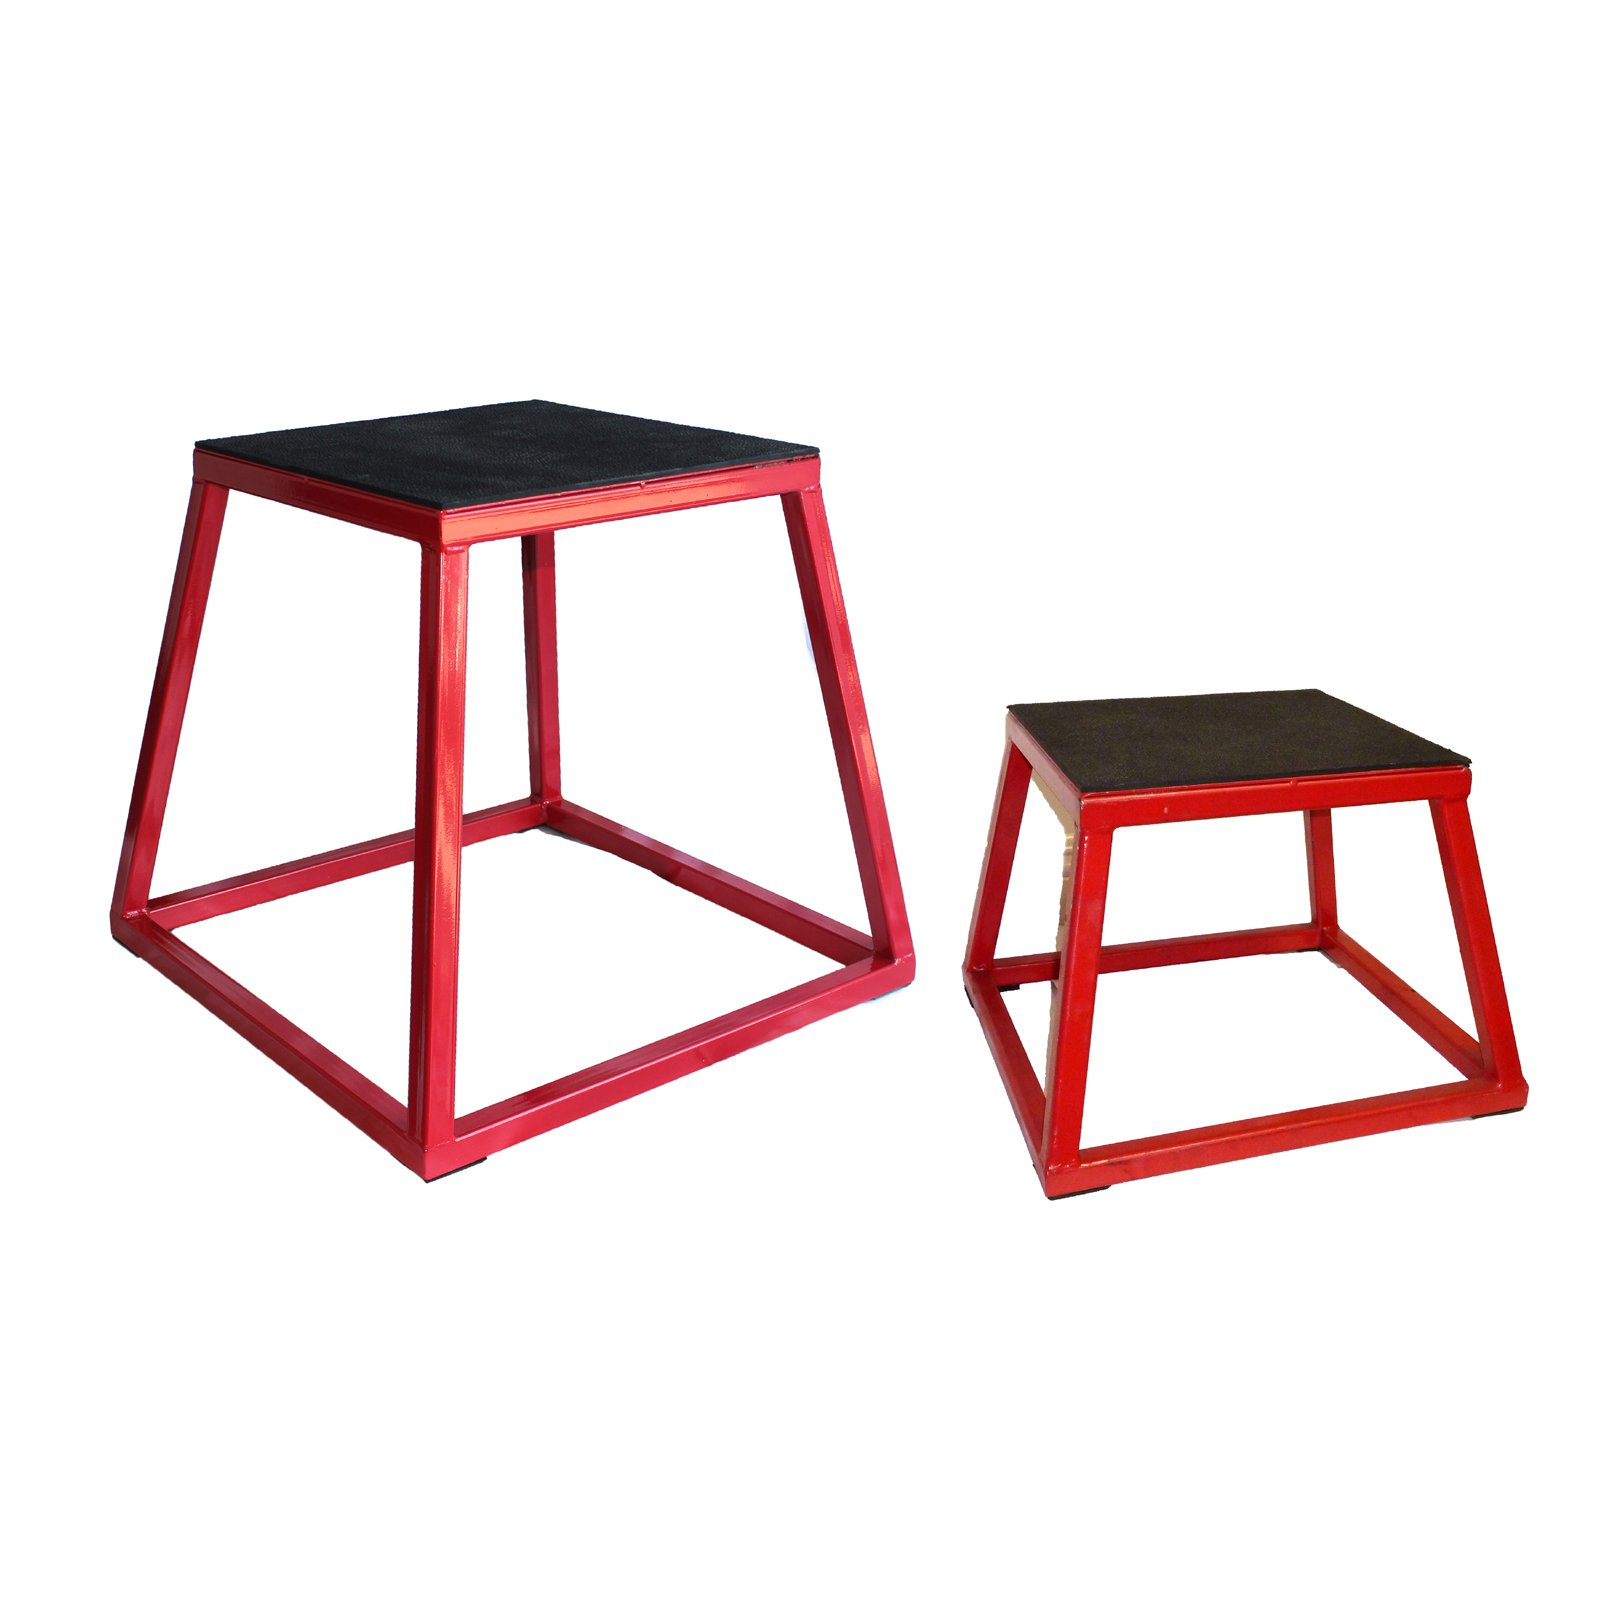 Apollo Athletics Plyometric Box, Great Jump Trainer, Heights Available in 12'', 18'', 24'', 30''